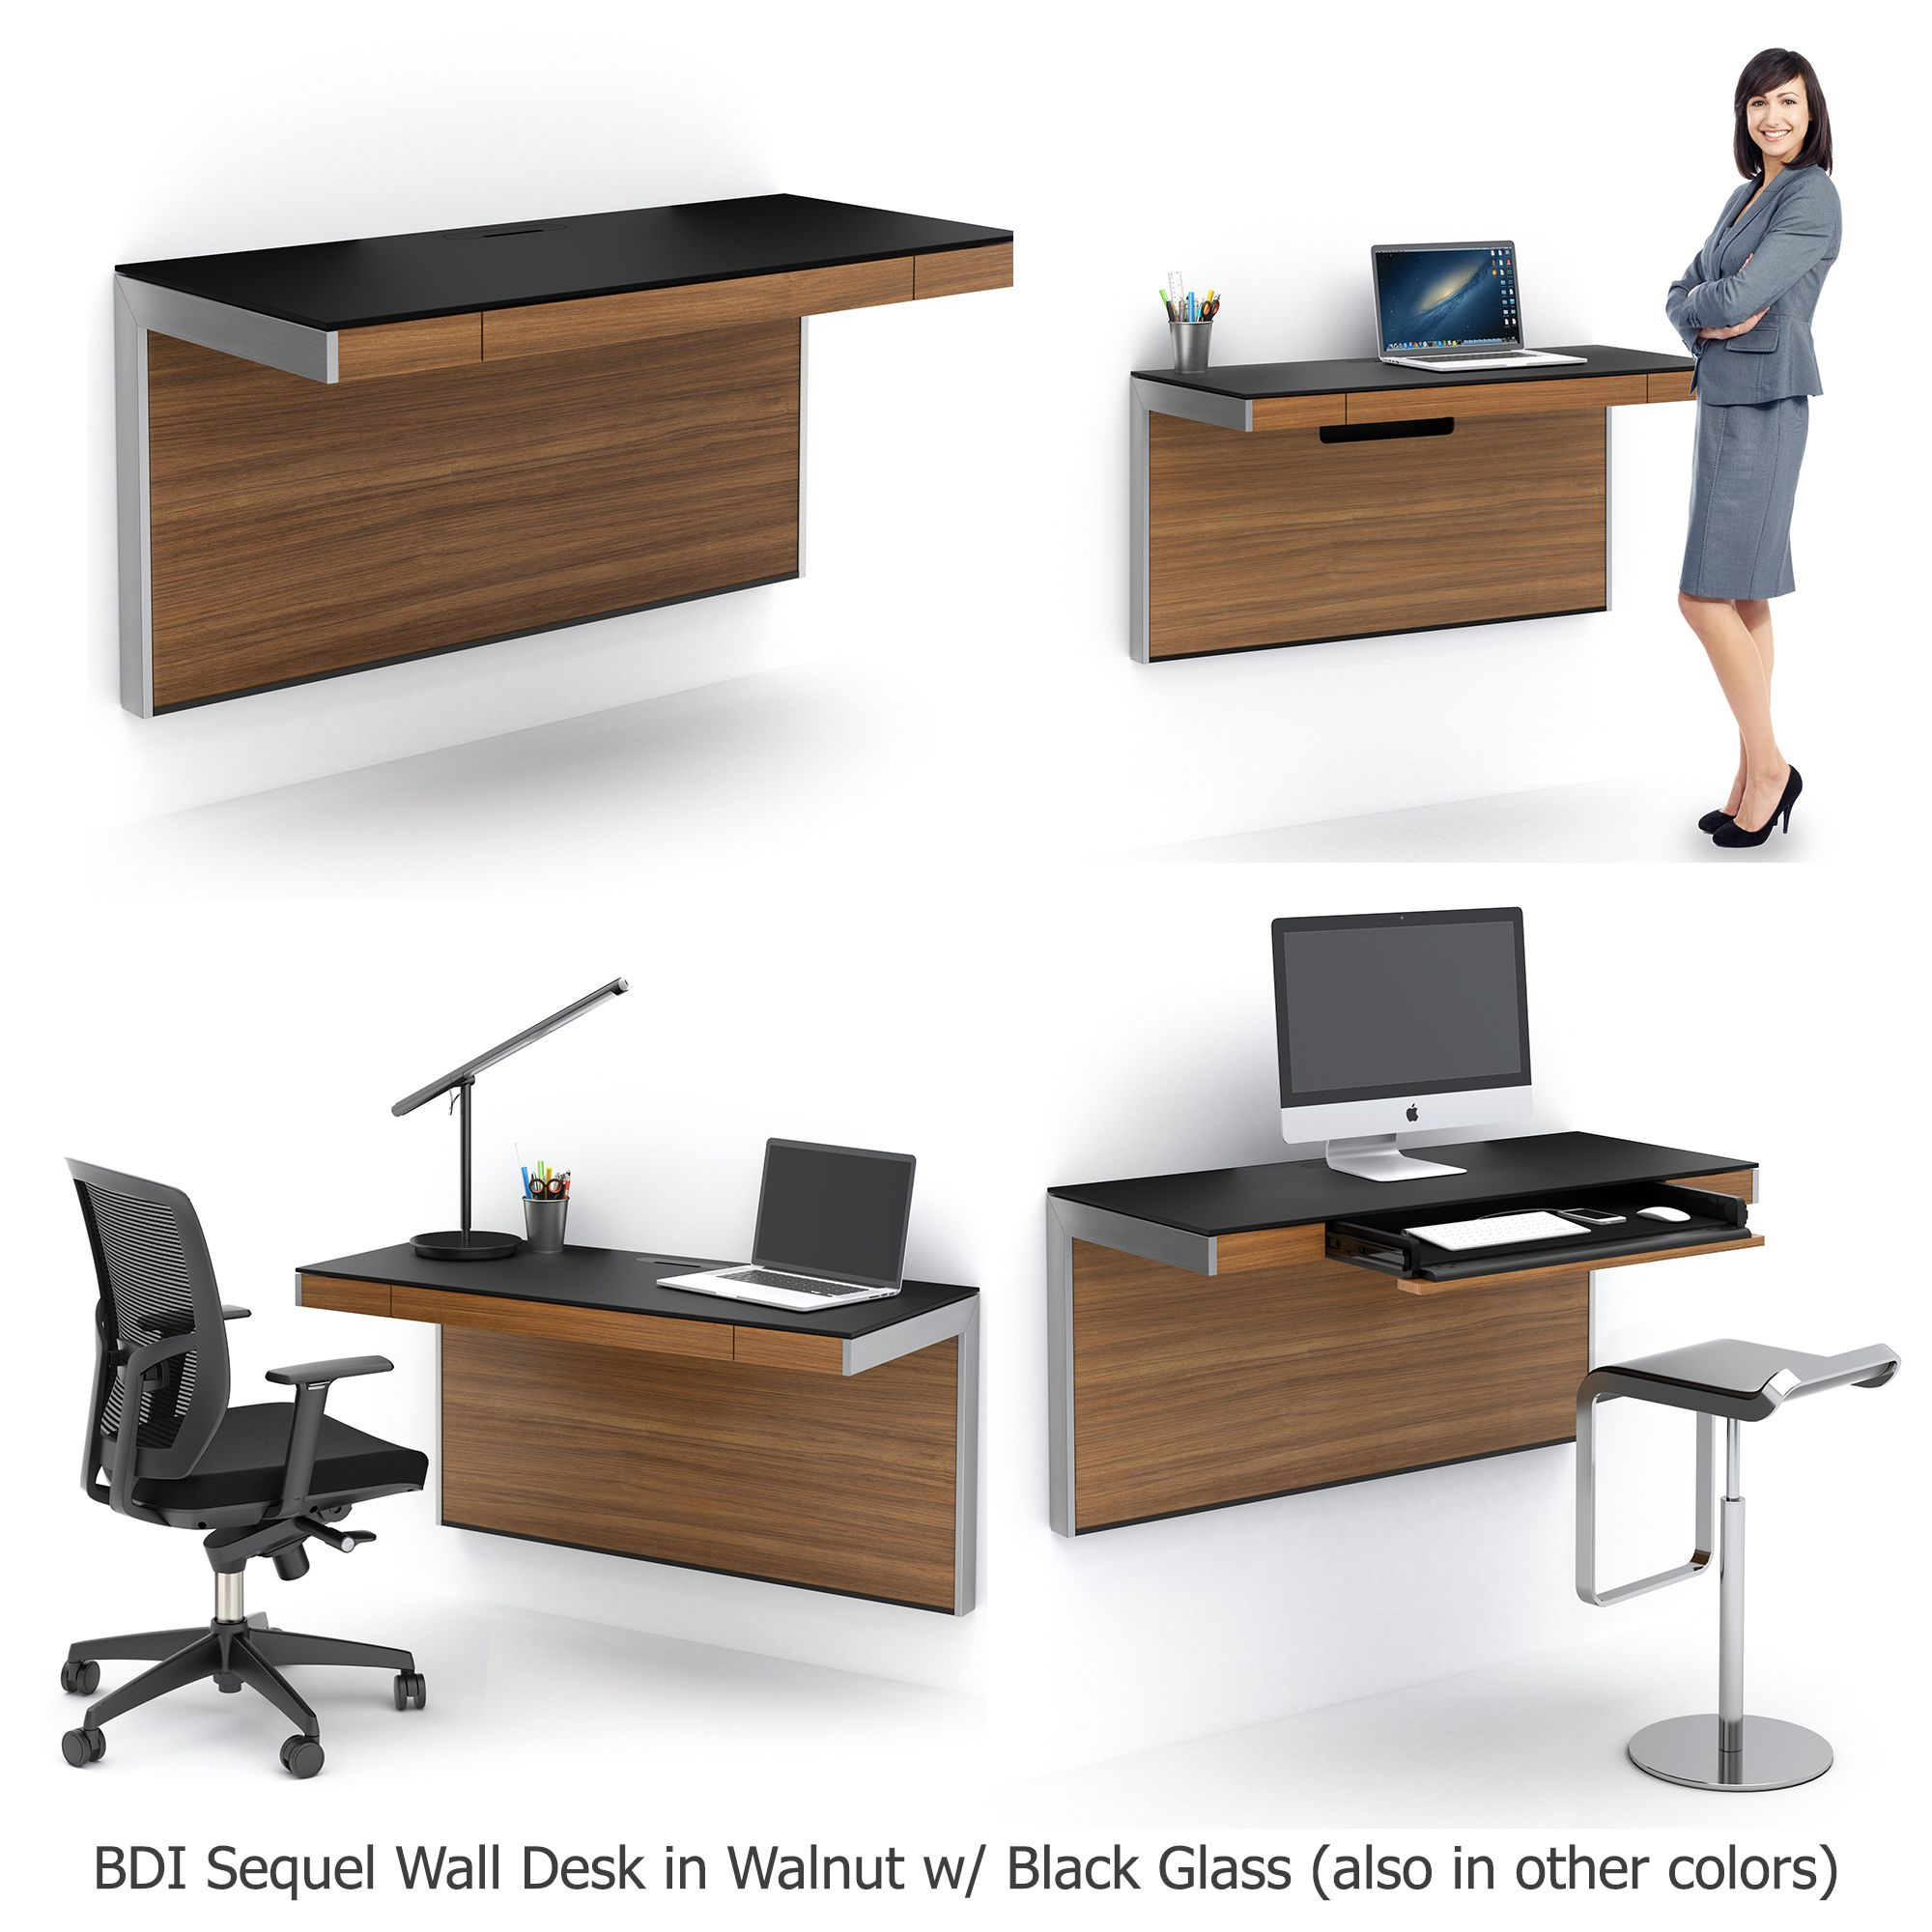 Bdi sequel wall desk in natural walnut w black glass desk